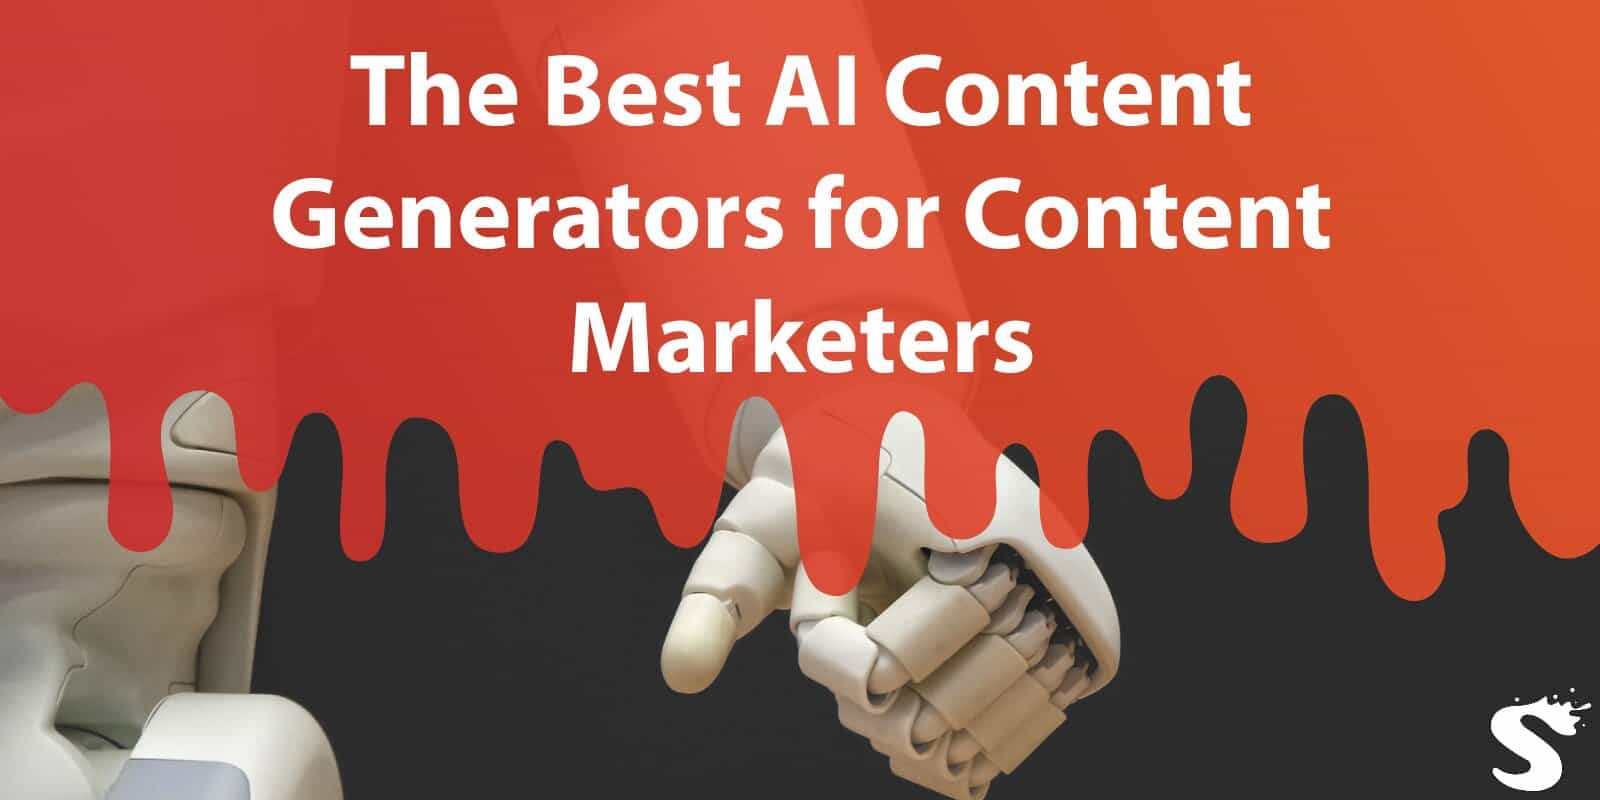 The Best AI Content Generators for Content Marketers: Use the Most Advanced Technology to Achieve Your Marketing Goals